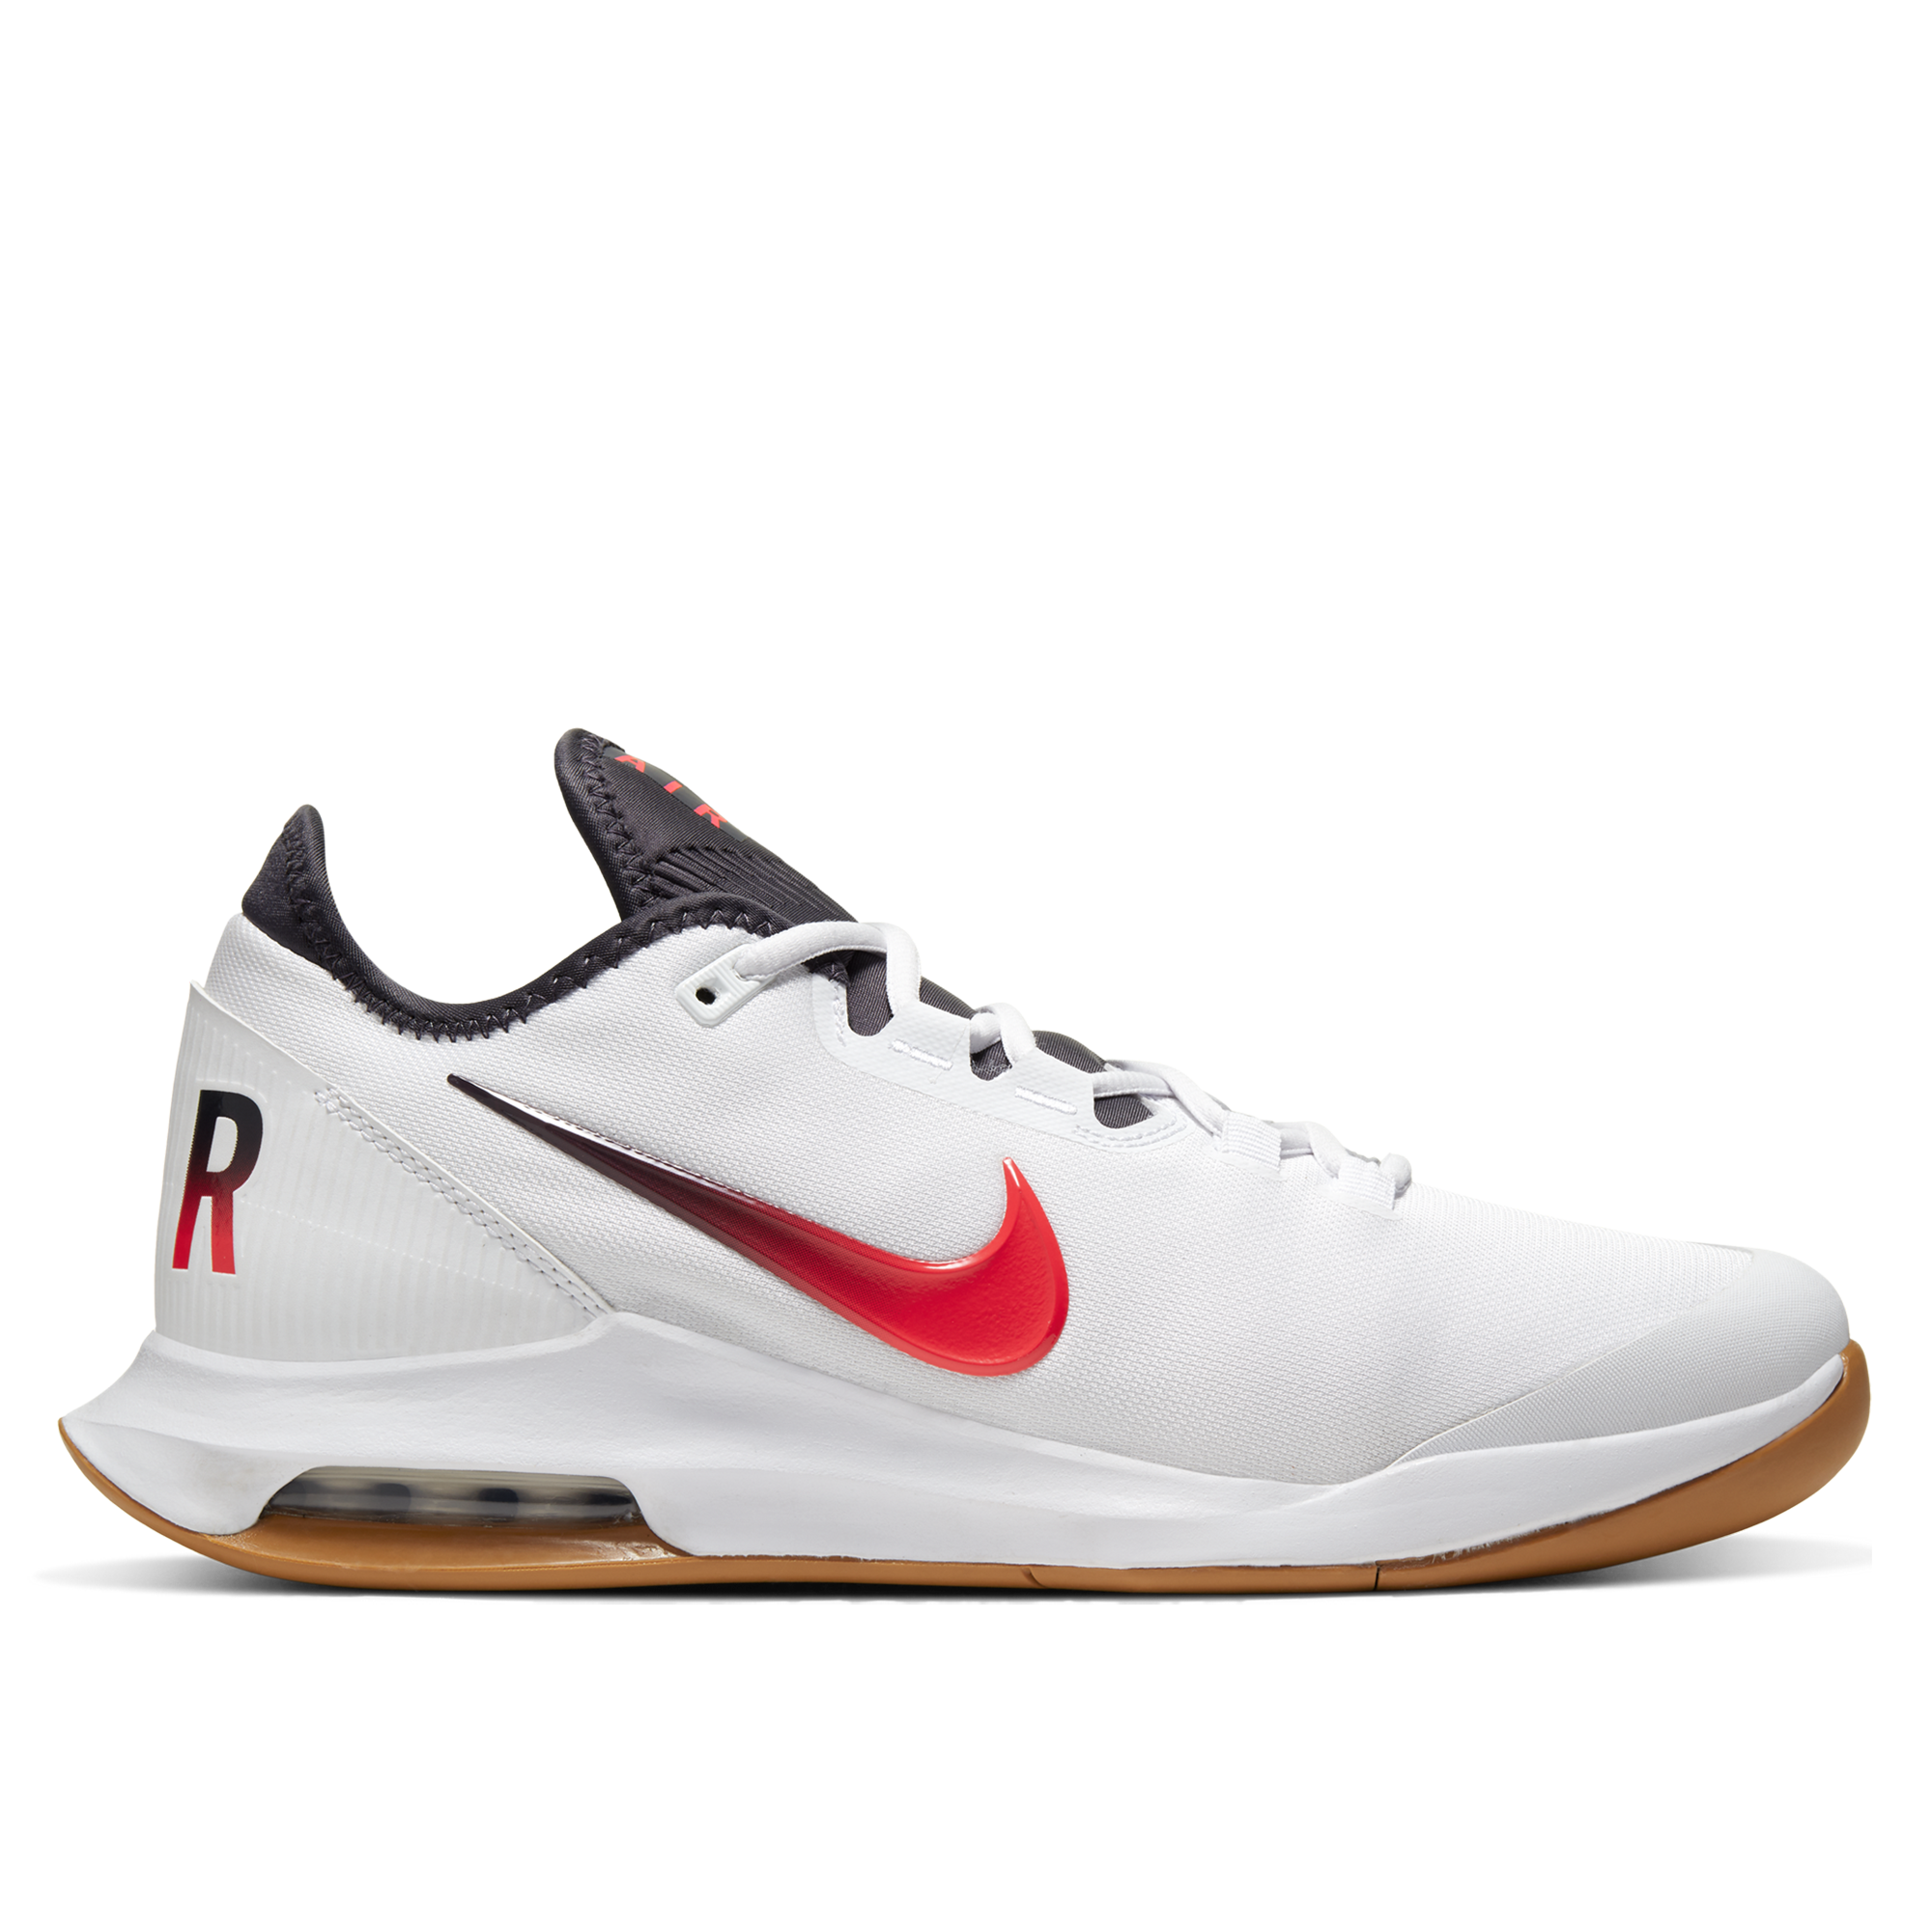 nikecourt air max